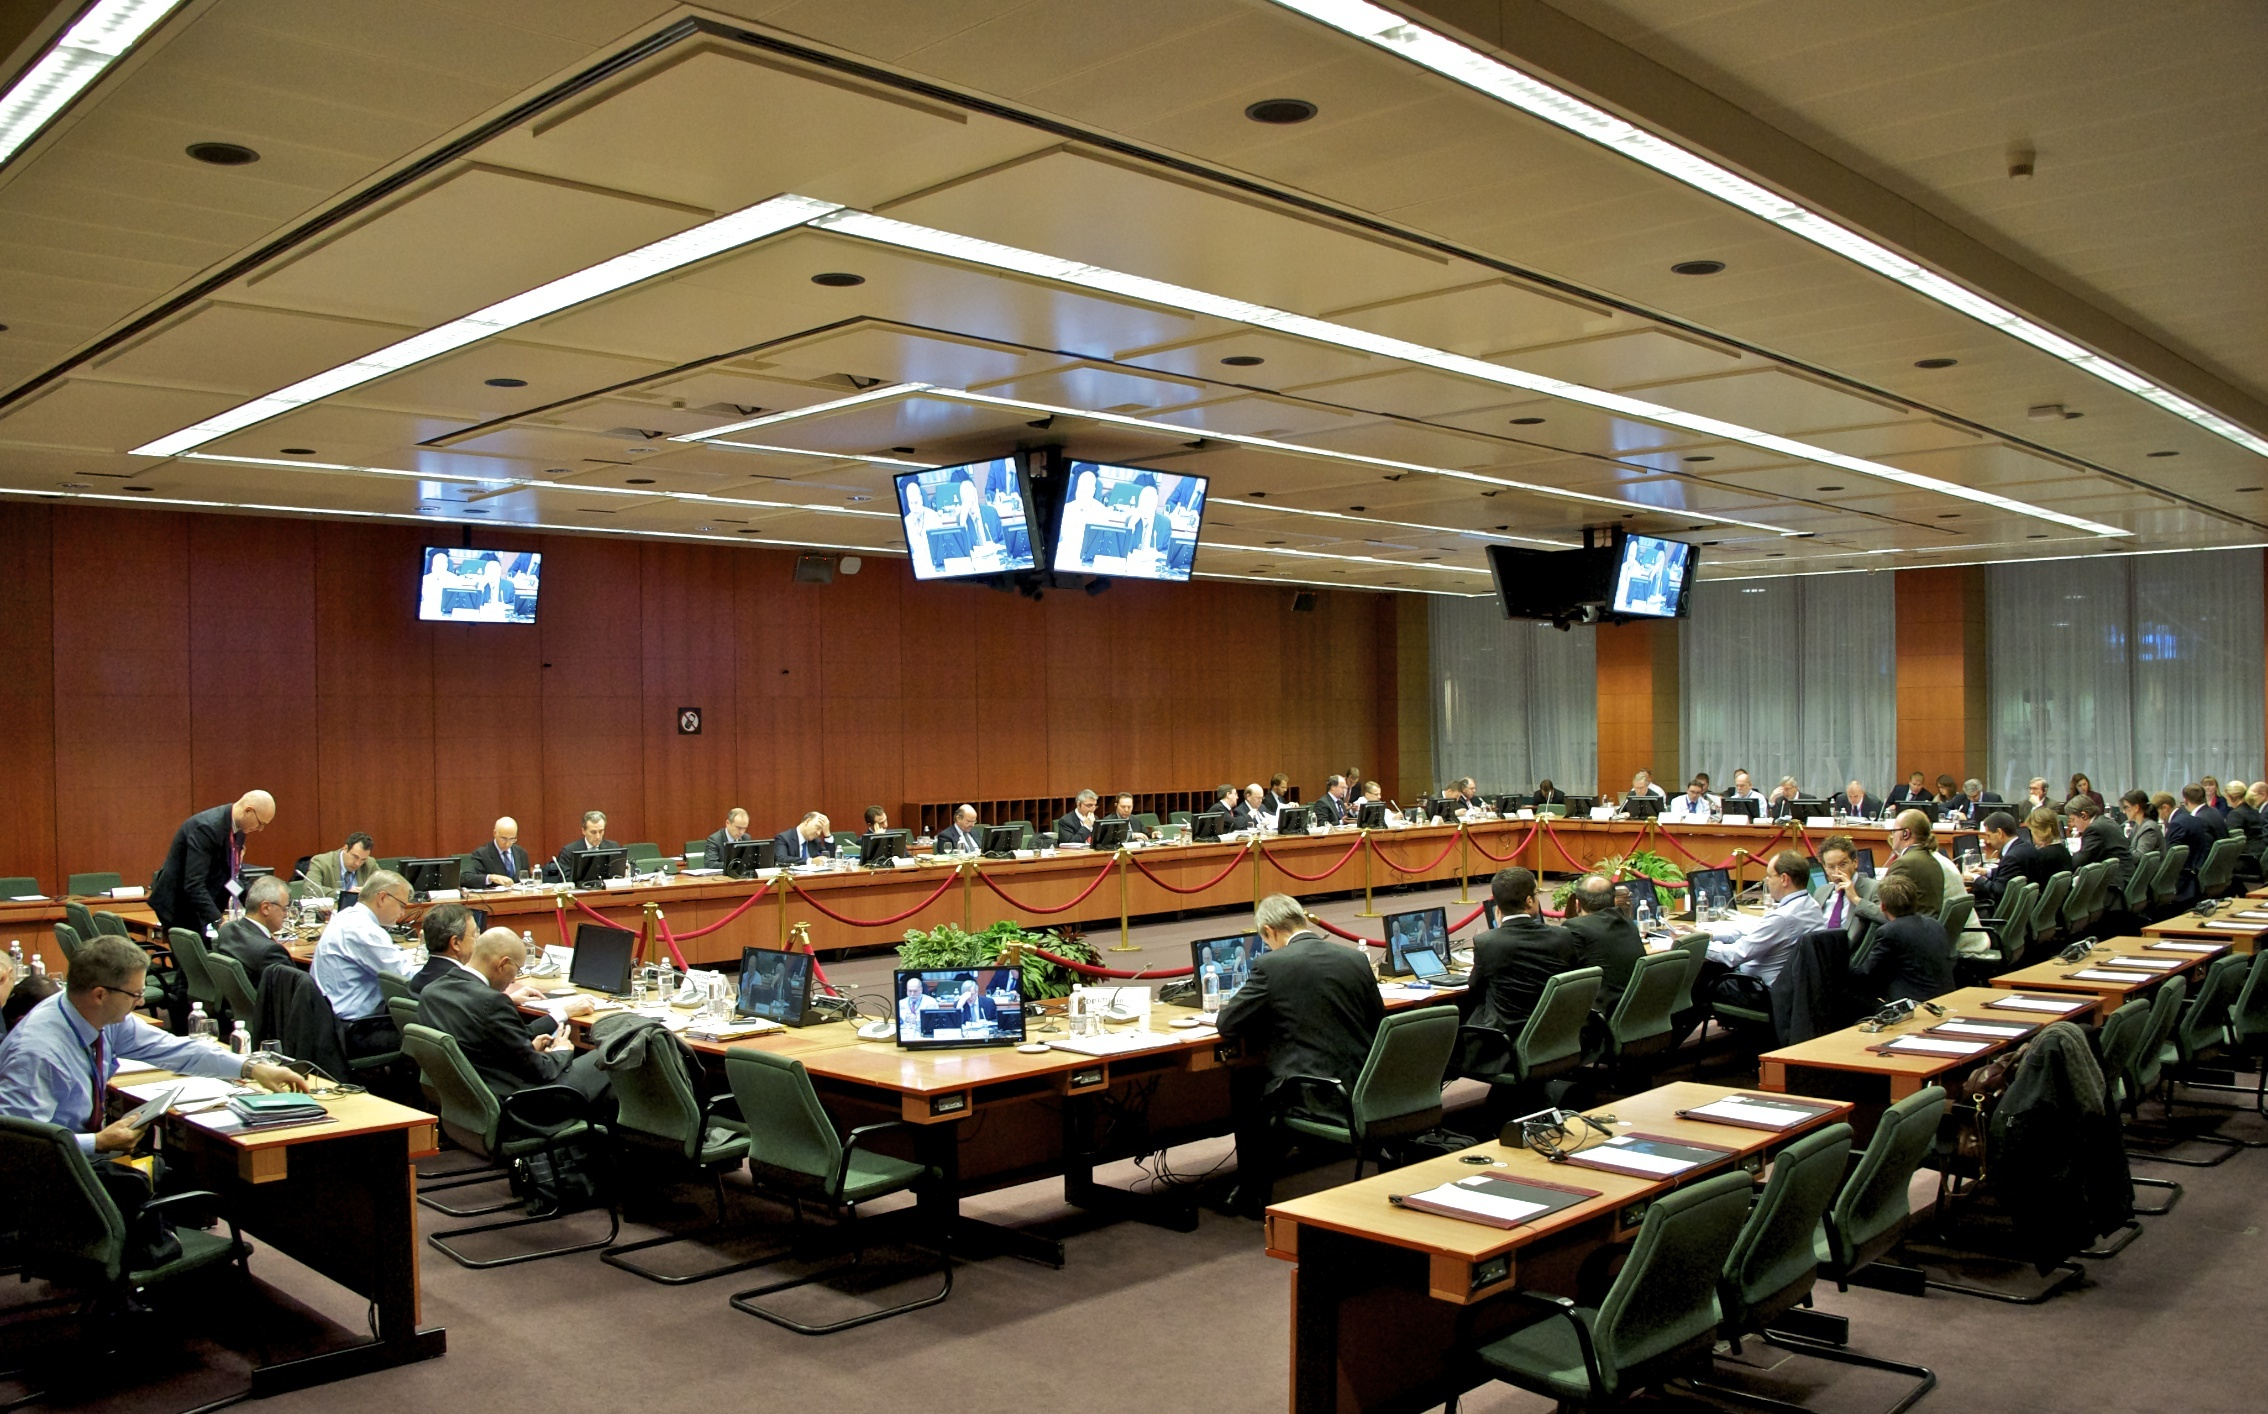 Agreement by December 14 asks the EuroWorking Group